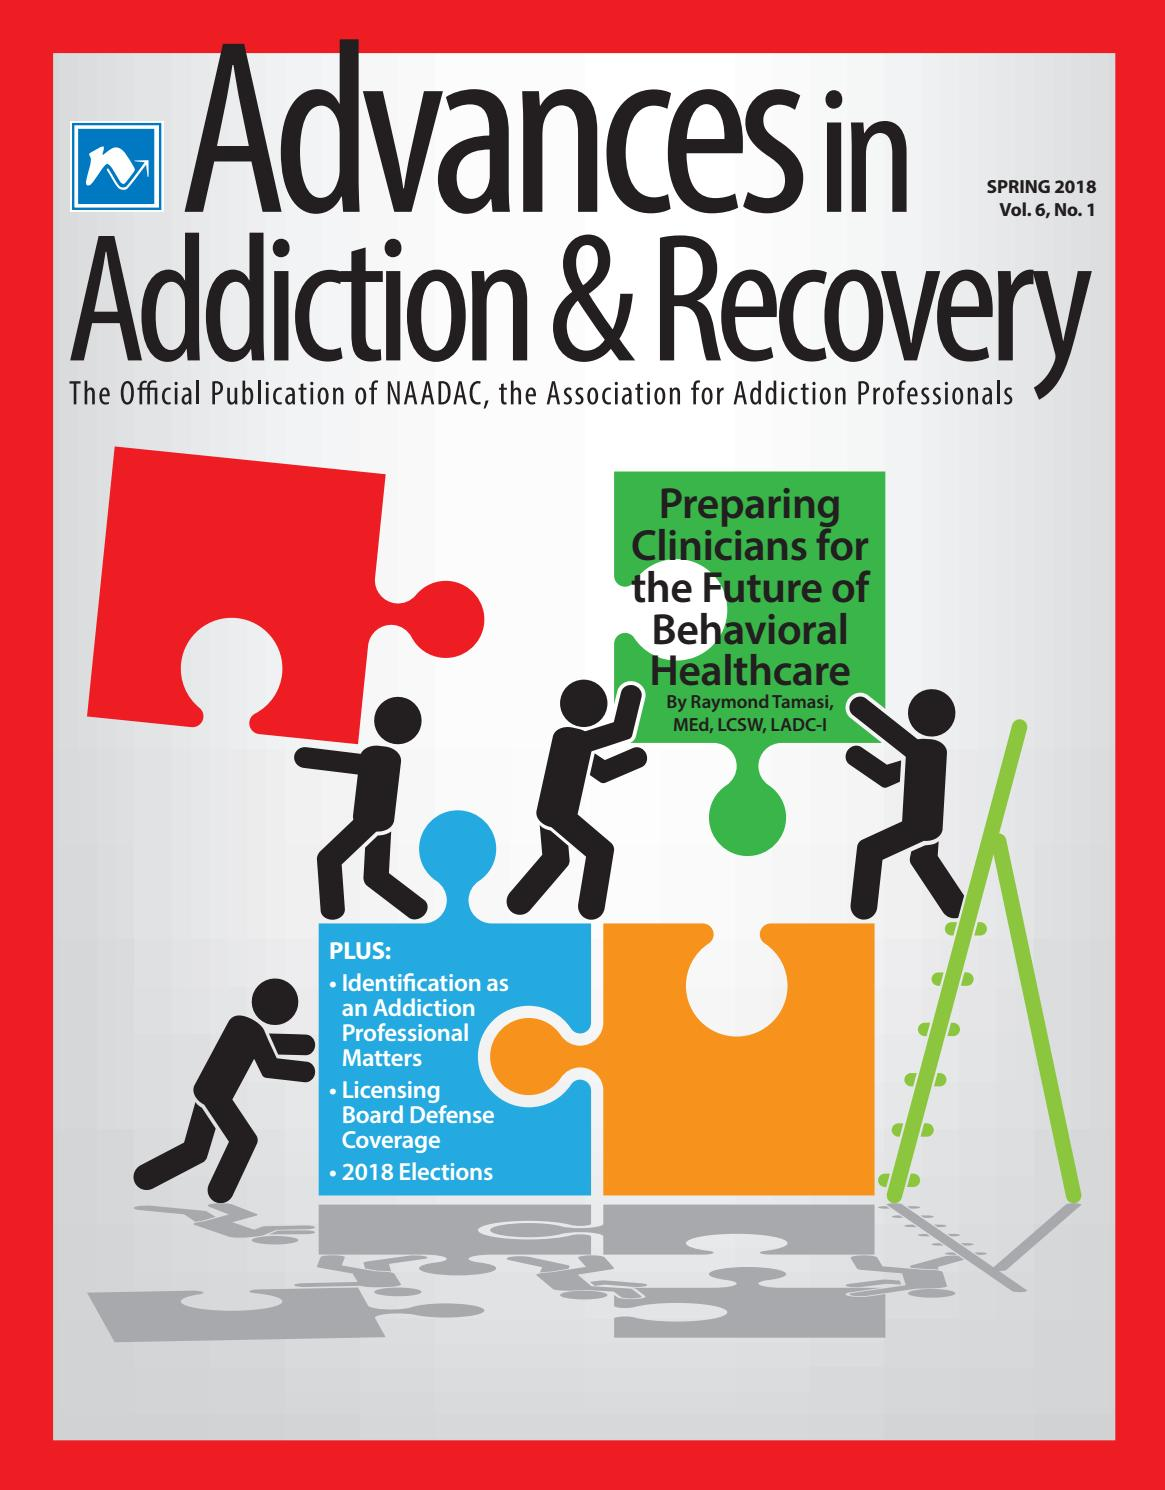 Advances in Addiction & Recovery (Spring 2018) by NAADAC, the Association  for Addiction Professionals - issuu